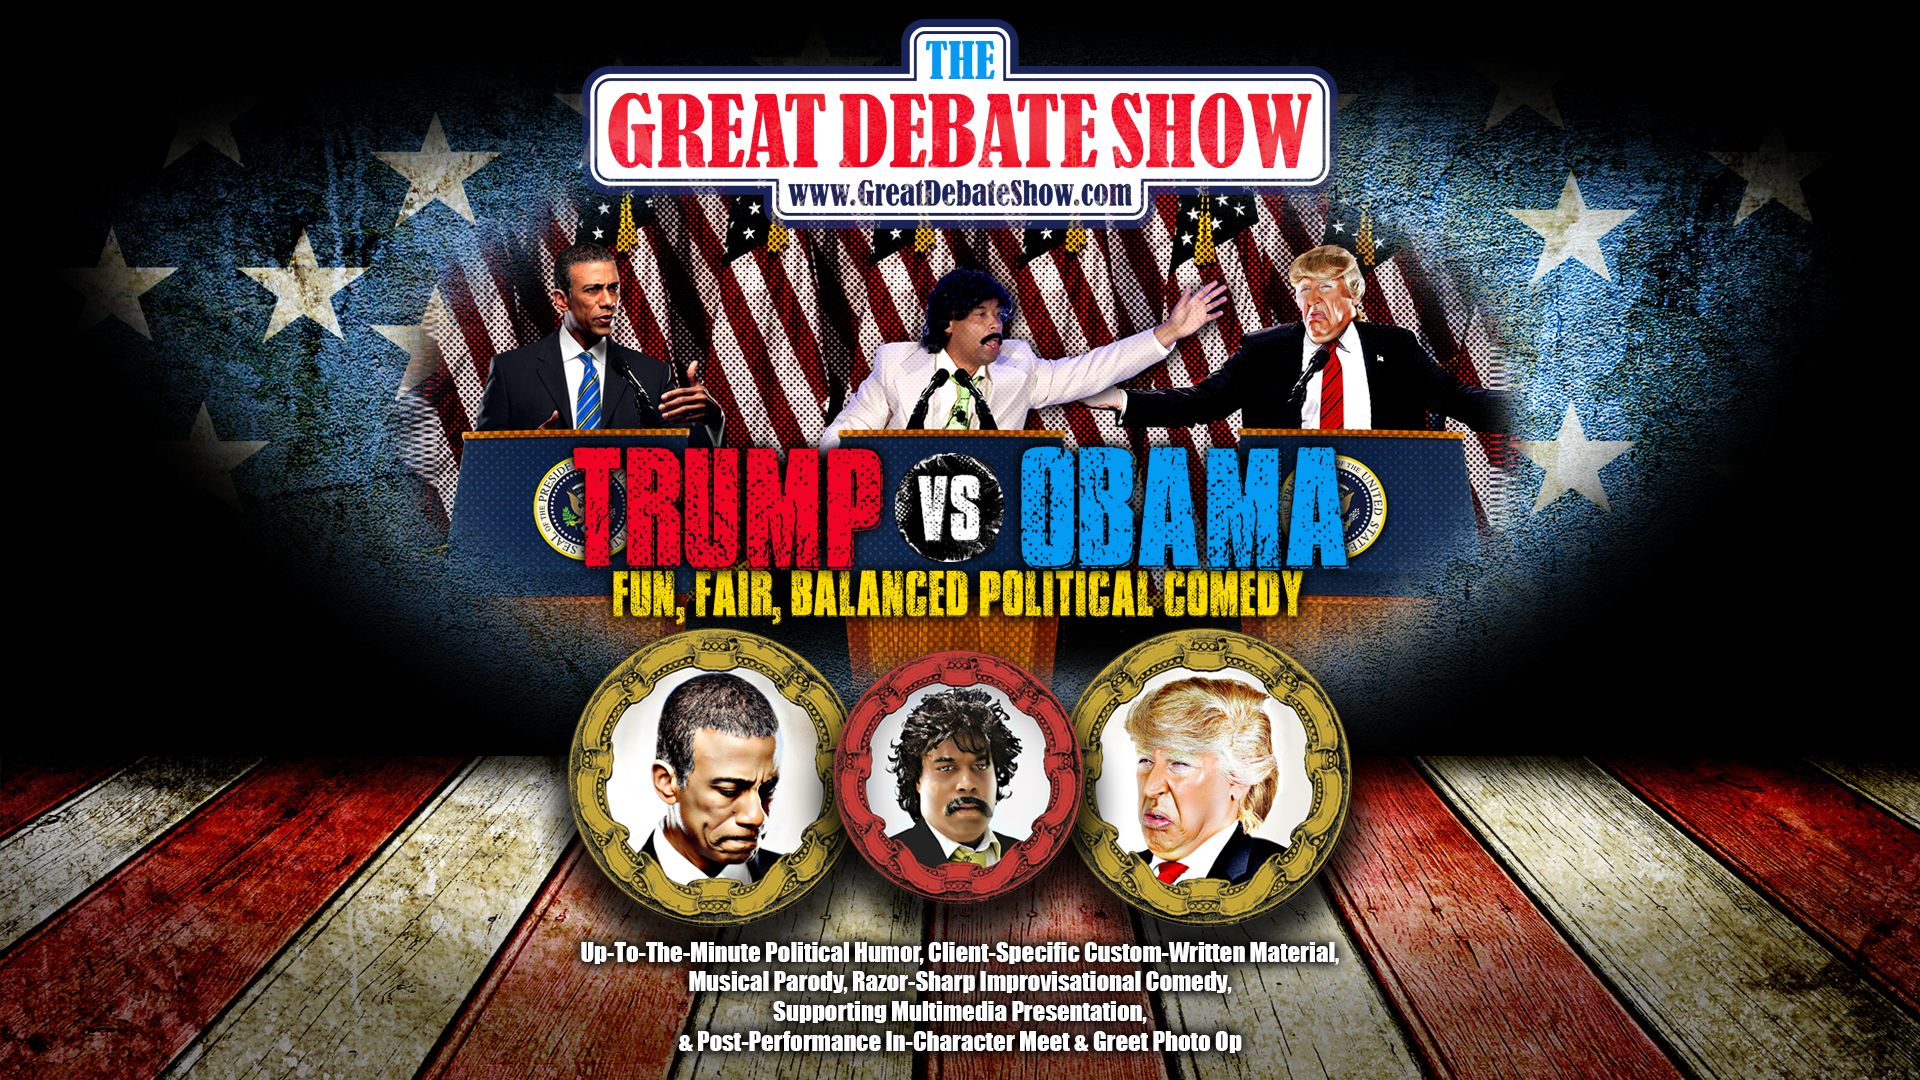 The-Great-Debate-Poster-1920x1080-72dpi-Direct-To-Clients.jpg